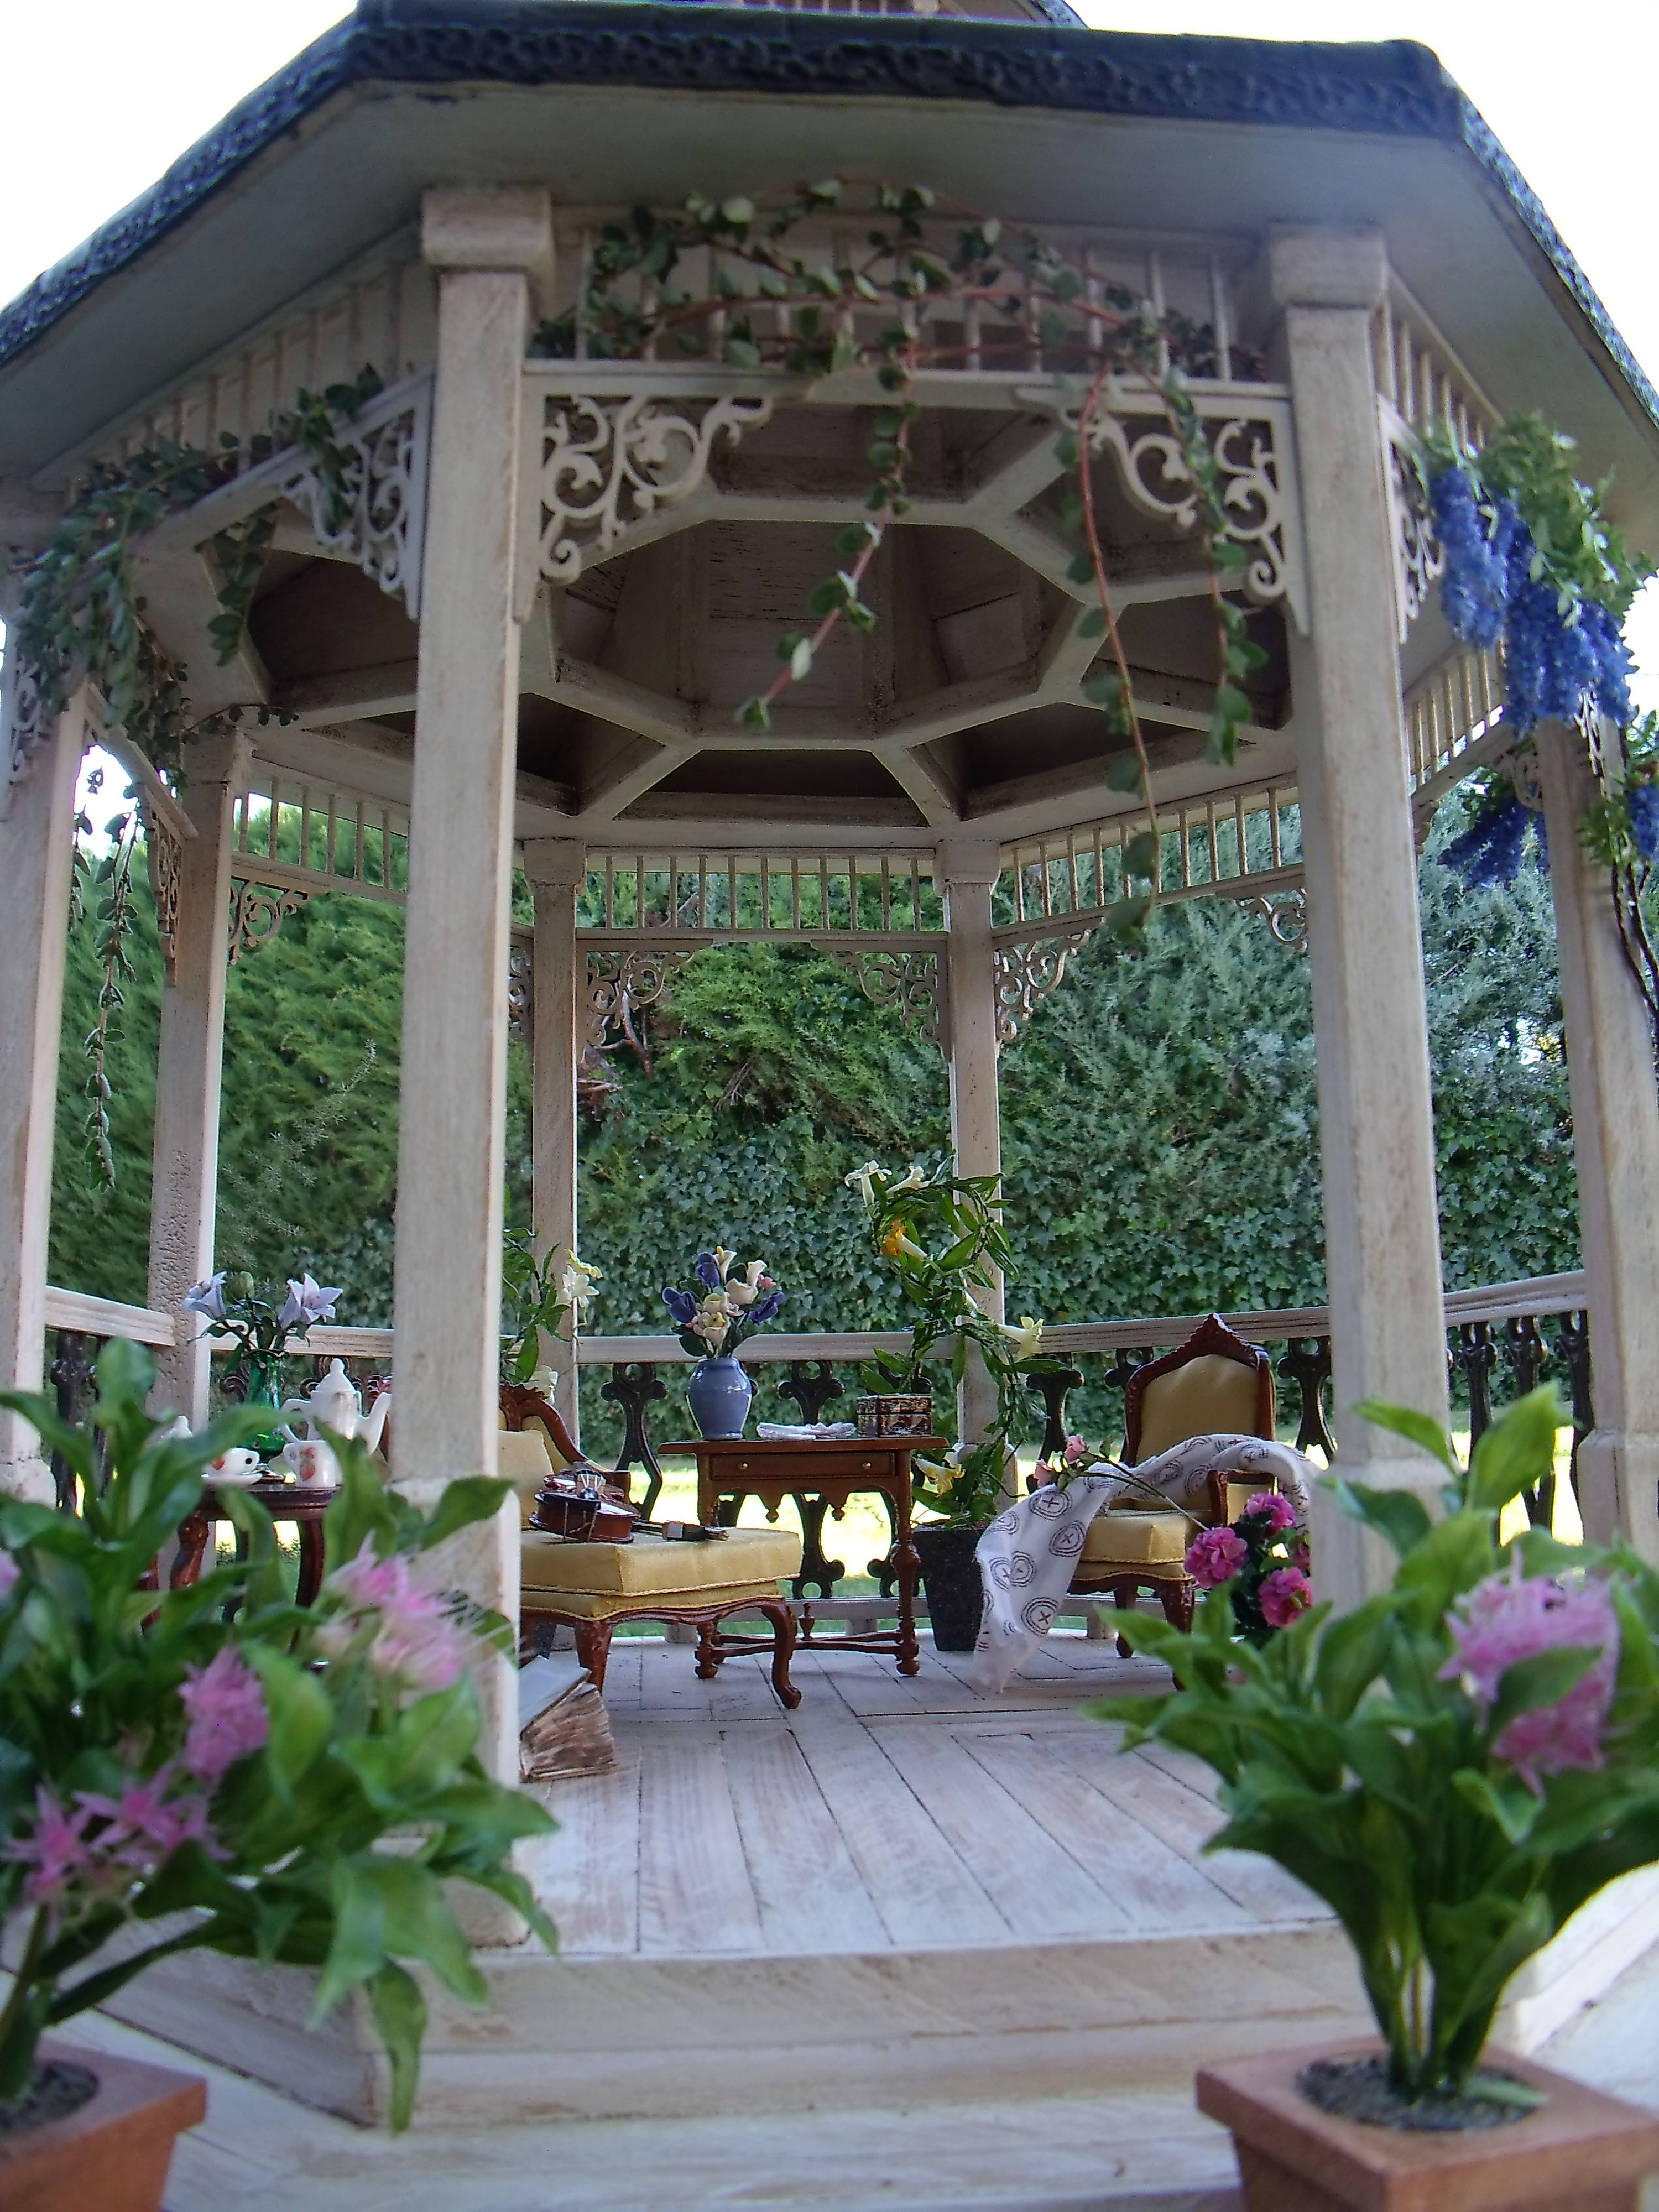 This Is A Gazebo At Rogers Gardens In Newport Beach,